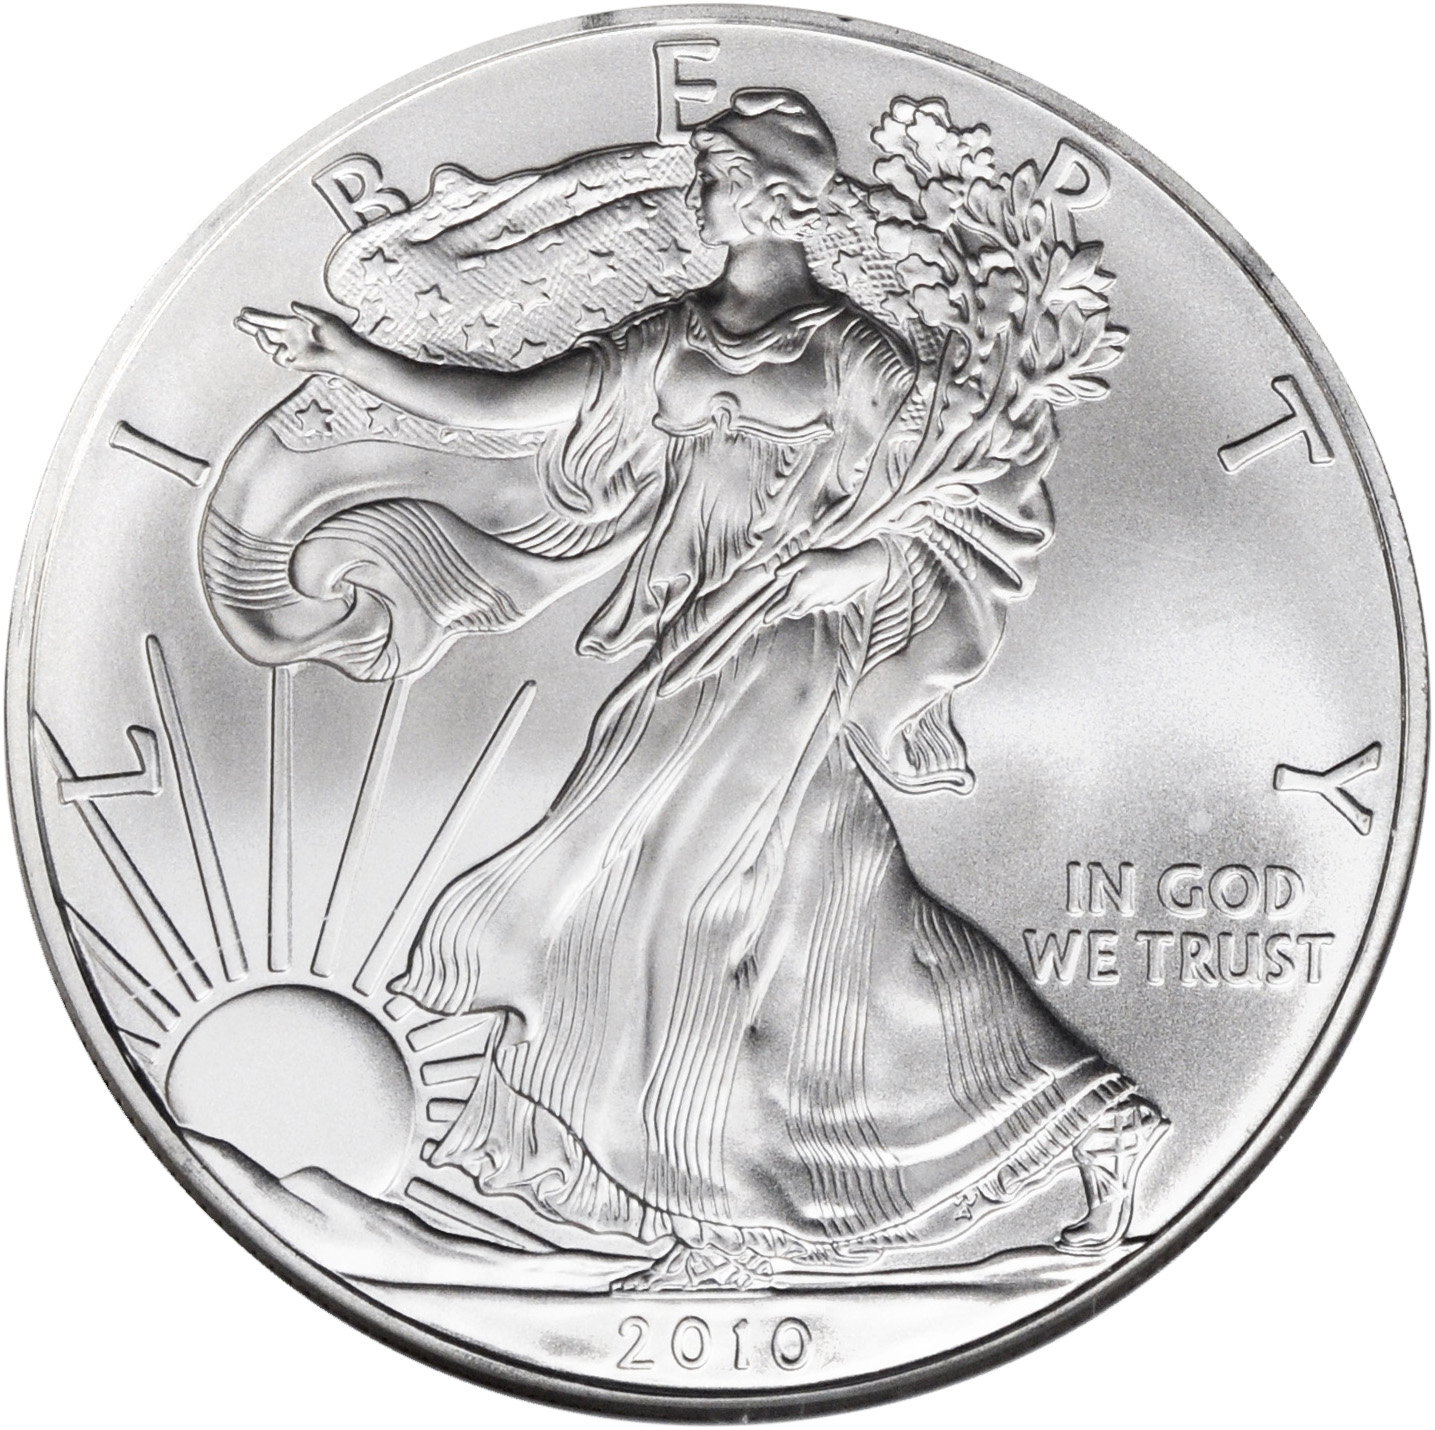 Value Of 2010 American Silver Eagle 1 Coin